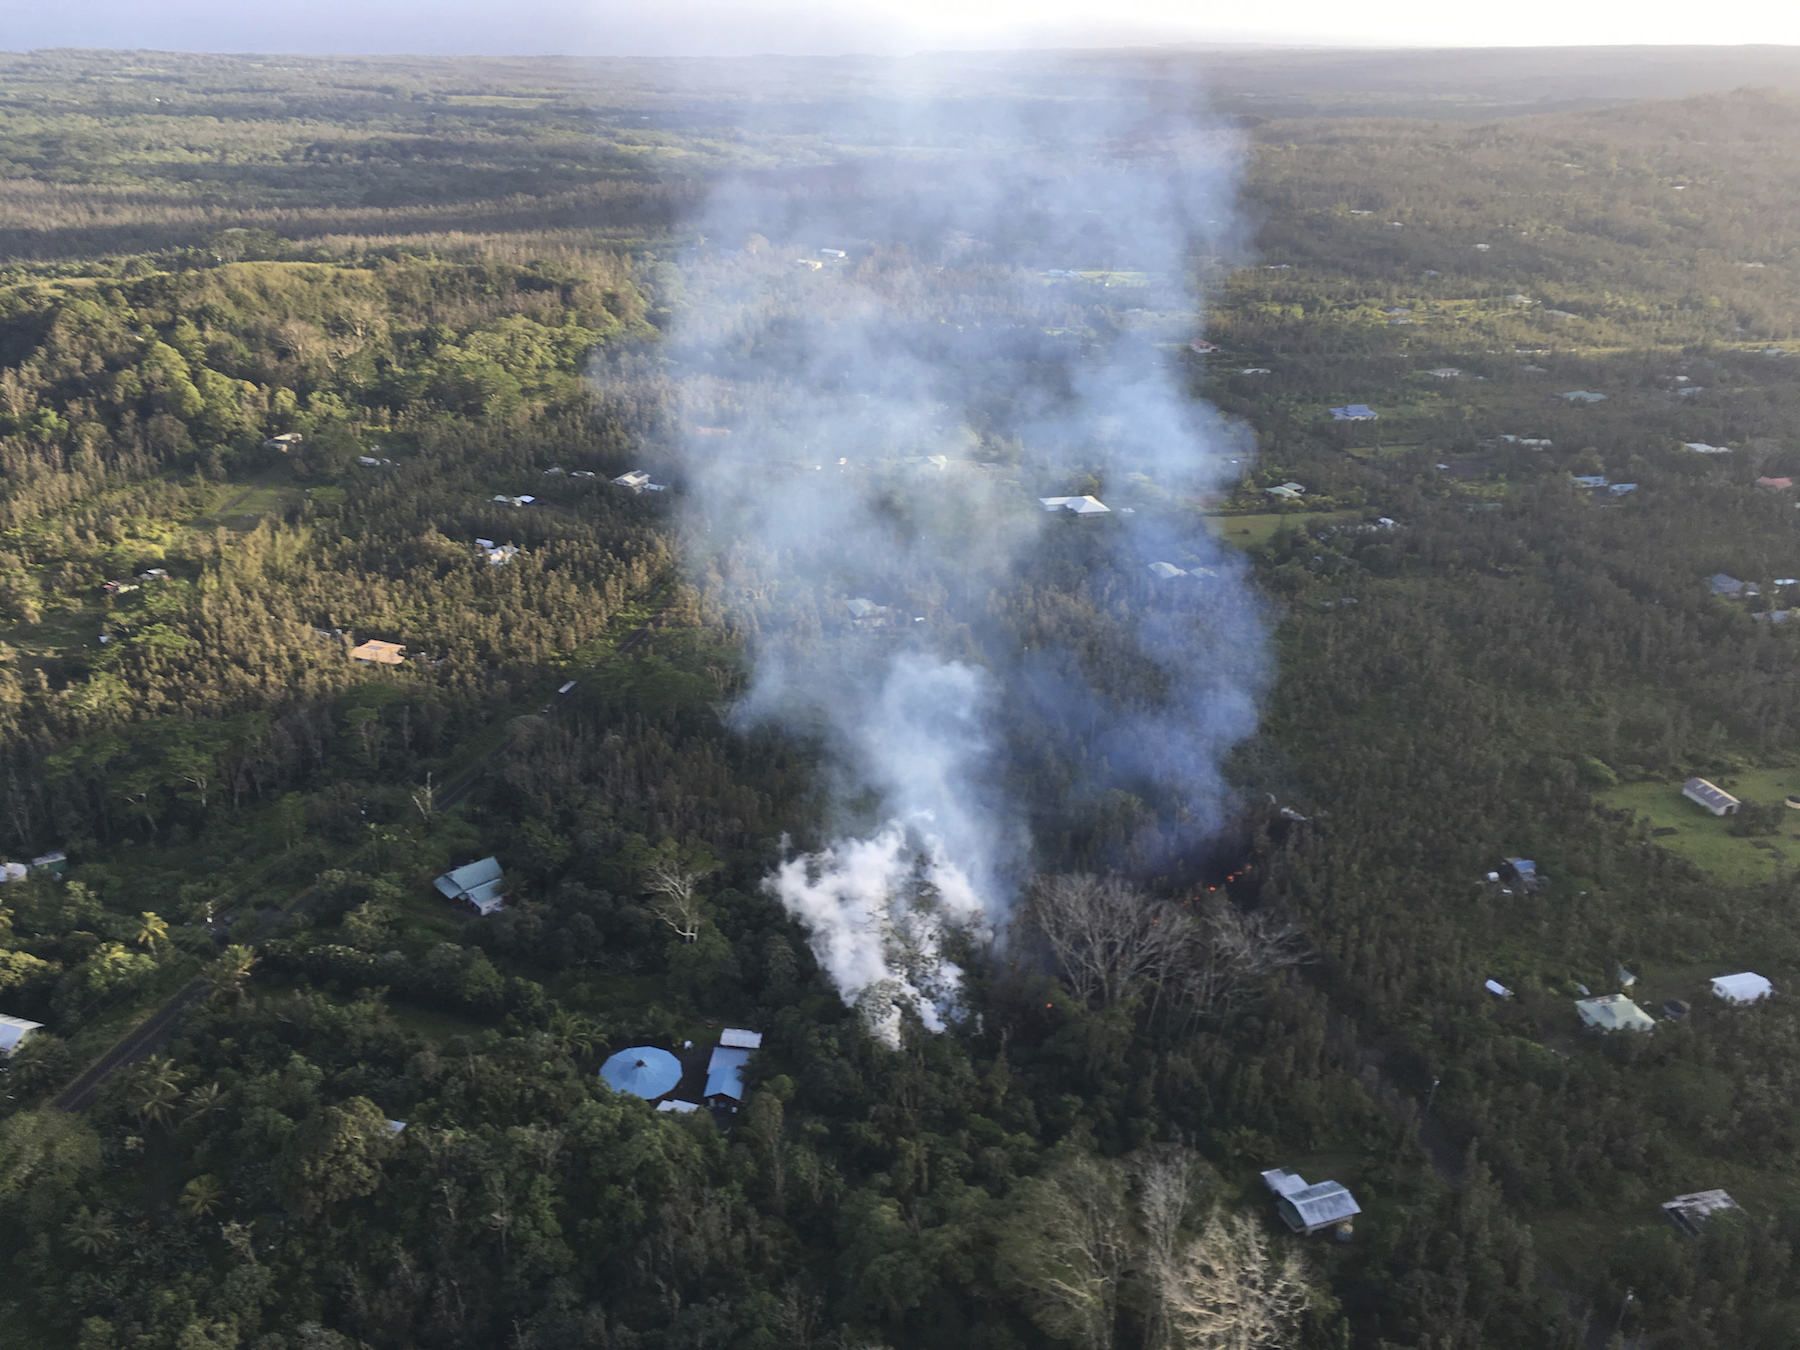 <div class='meta'><div class='origin-logo' data-origin='AP'></div><span class='caption-text' data-credit='USGS/AP'>Lava is shown burning in Leilani Estates subdivision near the town of Pahoa on Hawaii'€™s Big Island.</span></div>